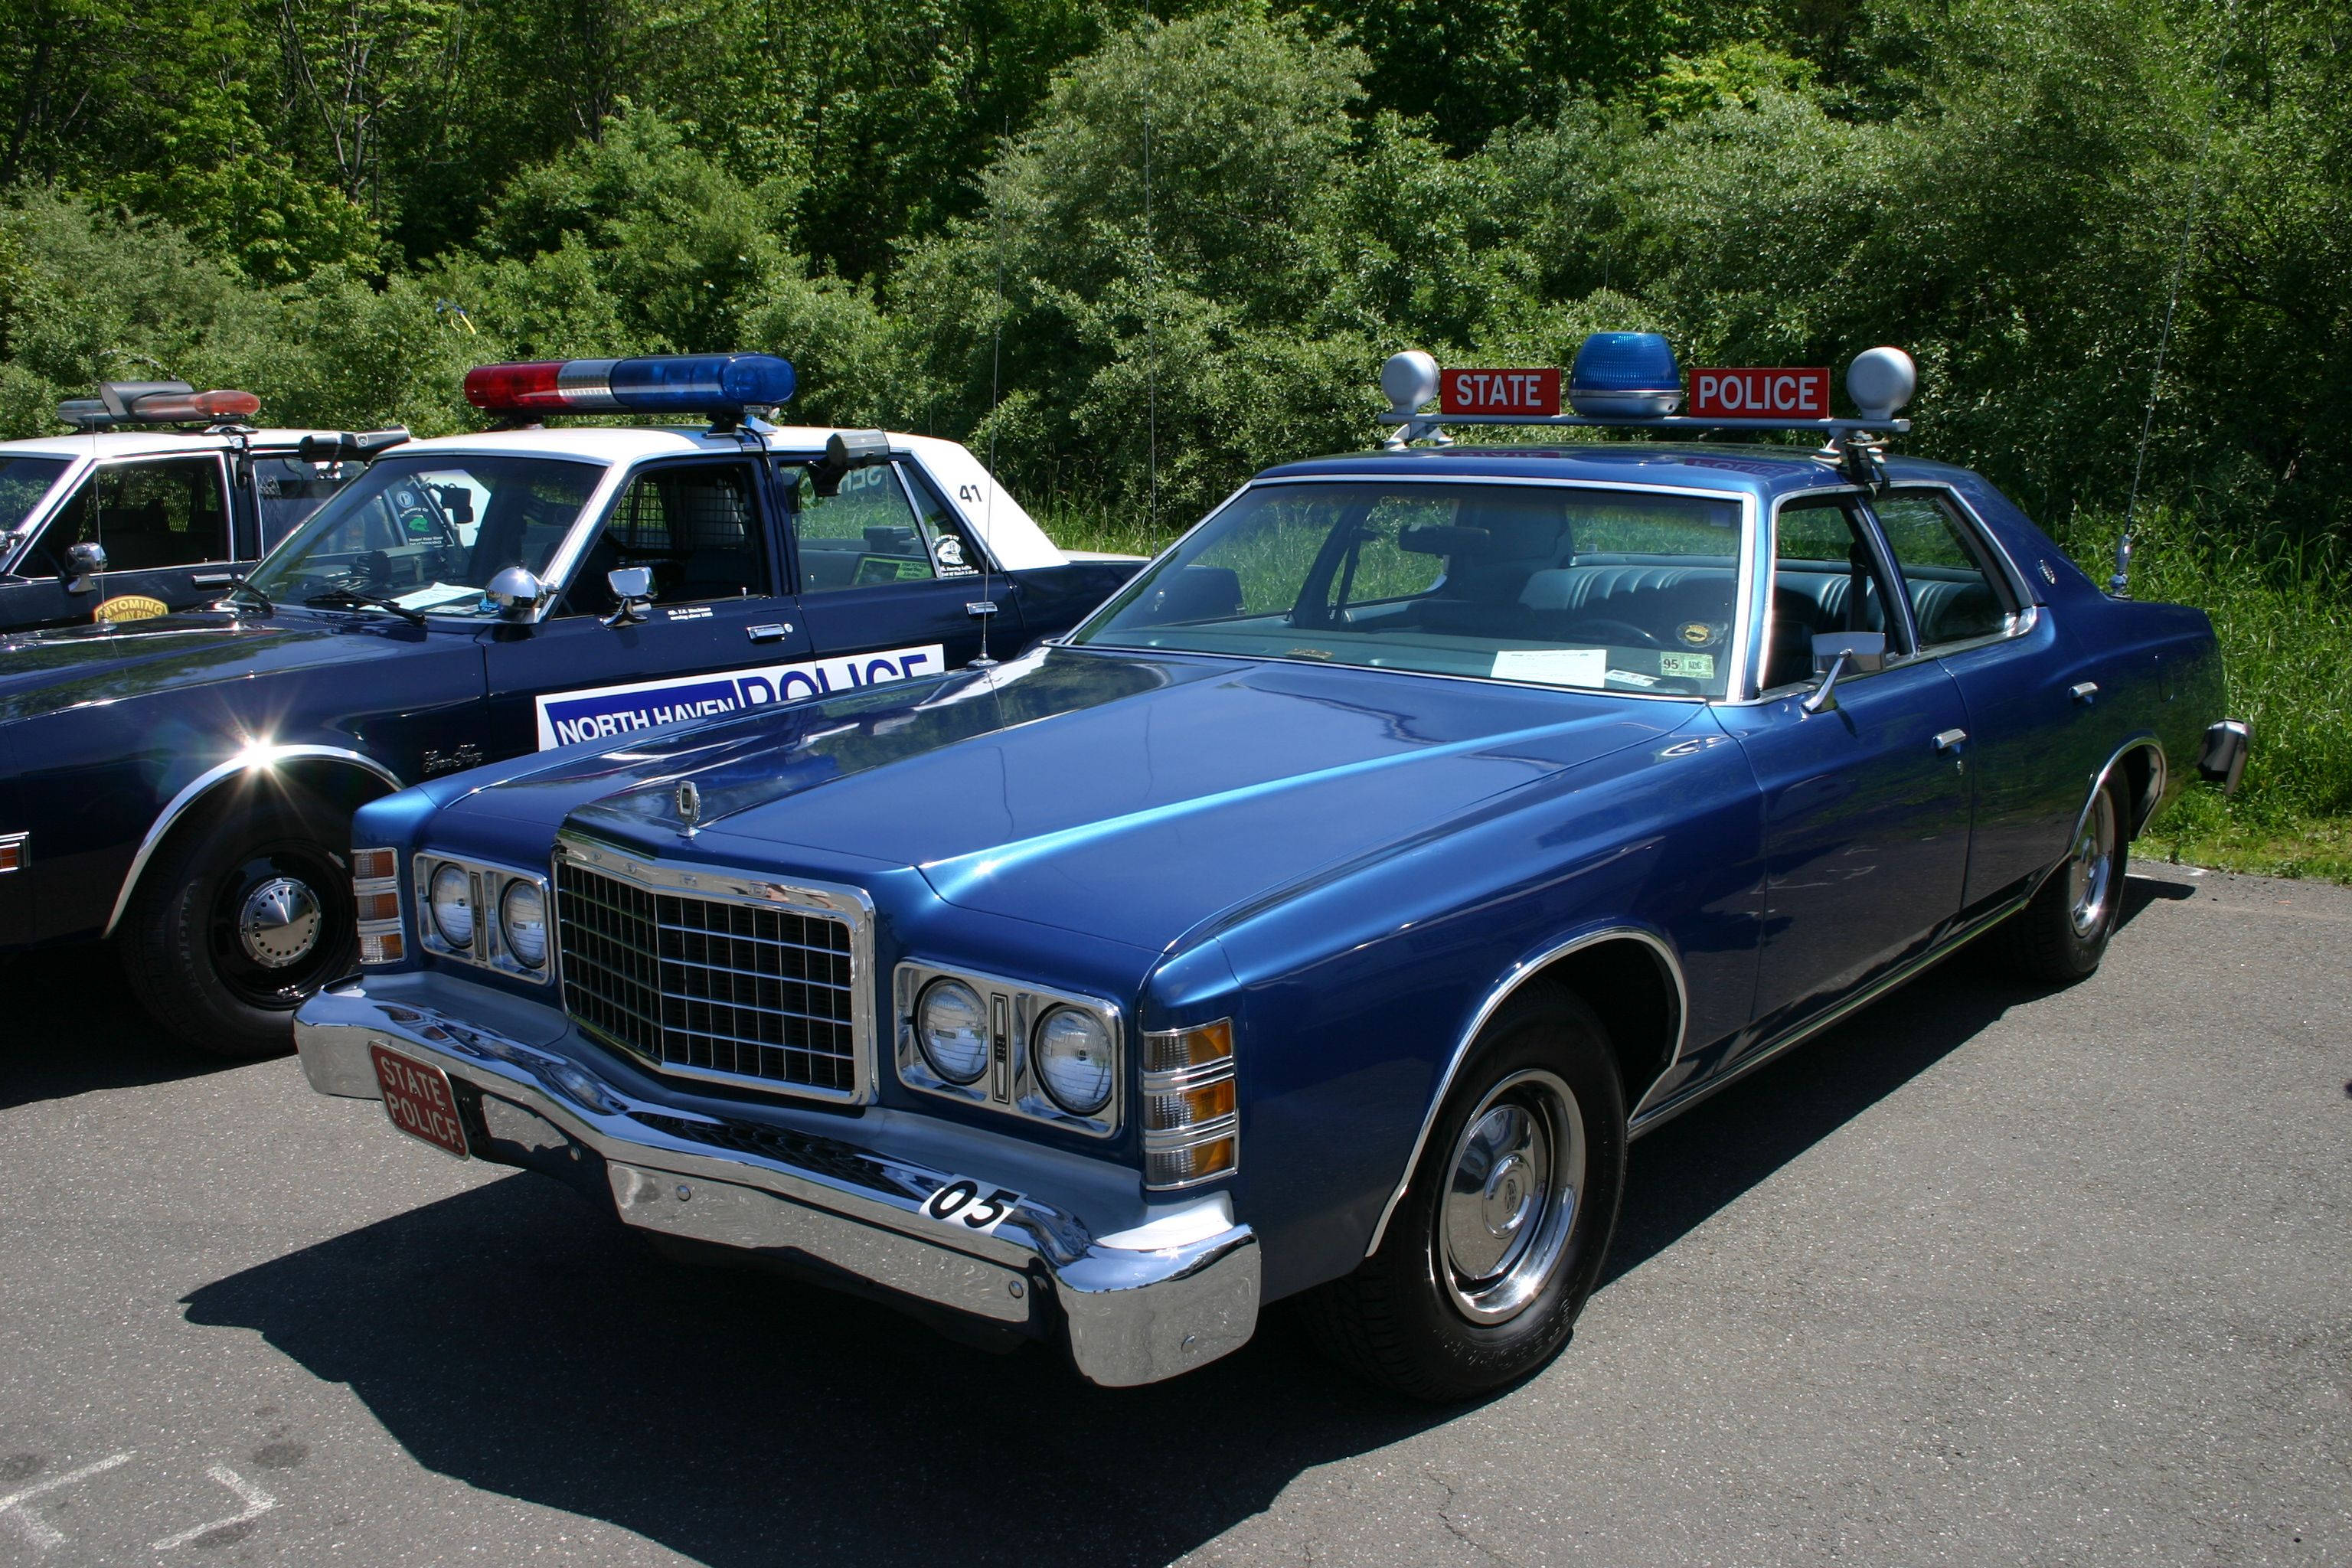 1978 Ltd Connecticut State Police Cruiser Police Cars Old